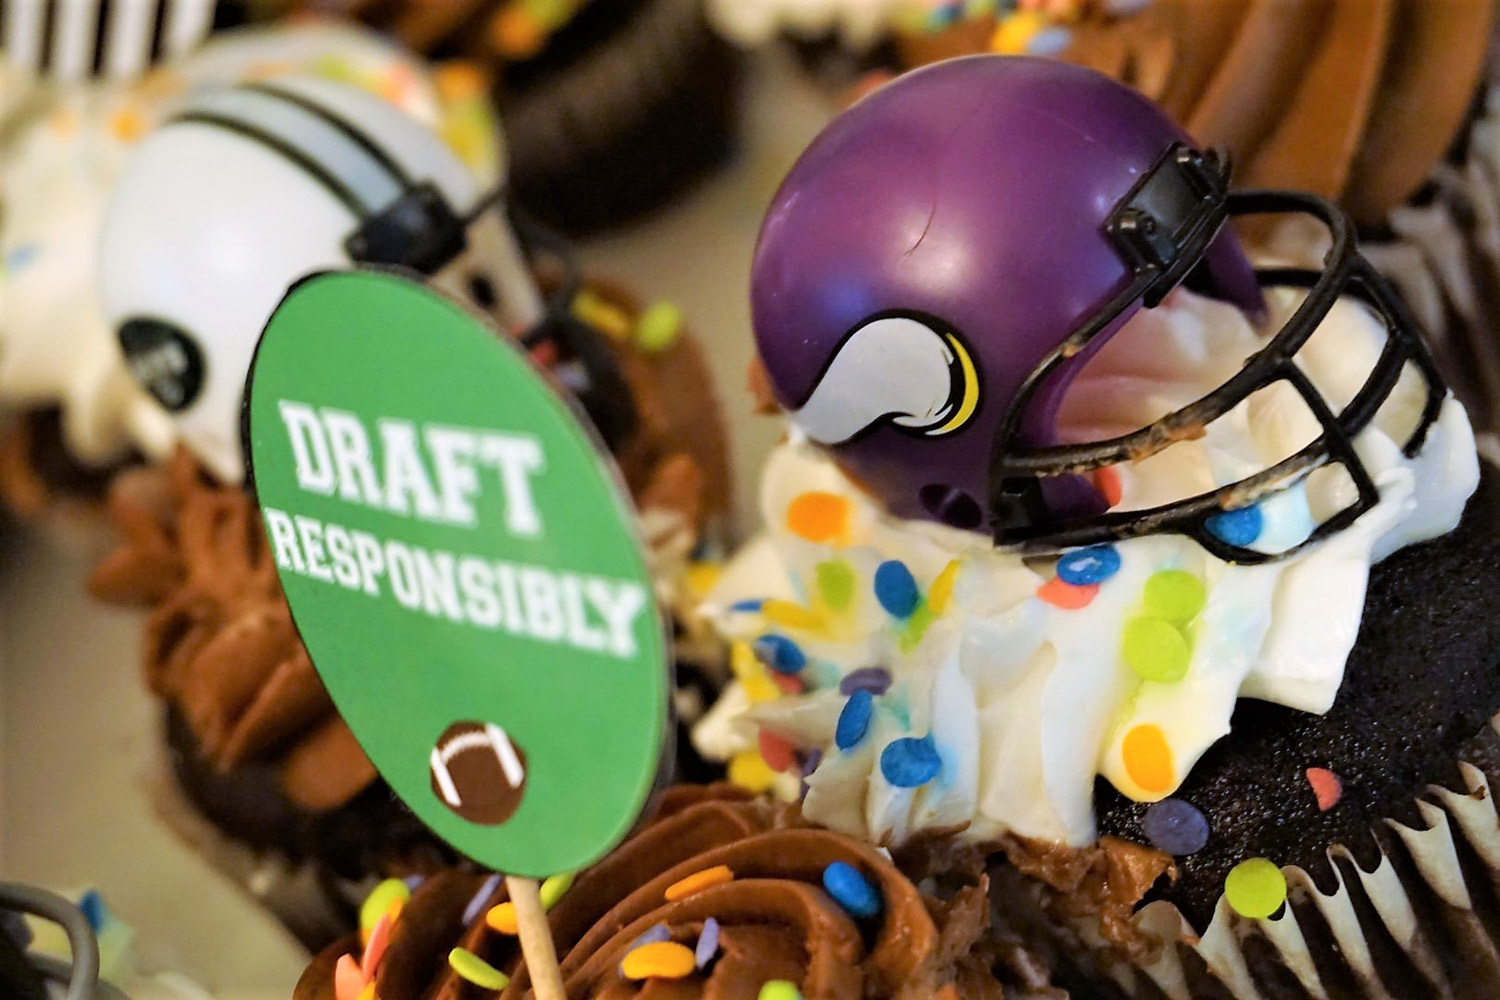 Draft responsibility cupcake toppers for fantasy football draft party